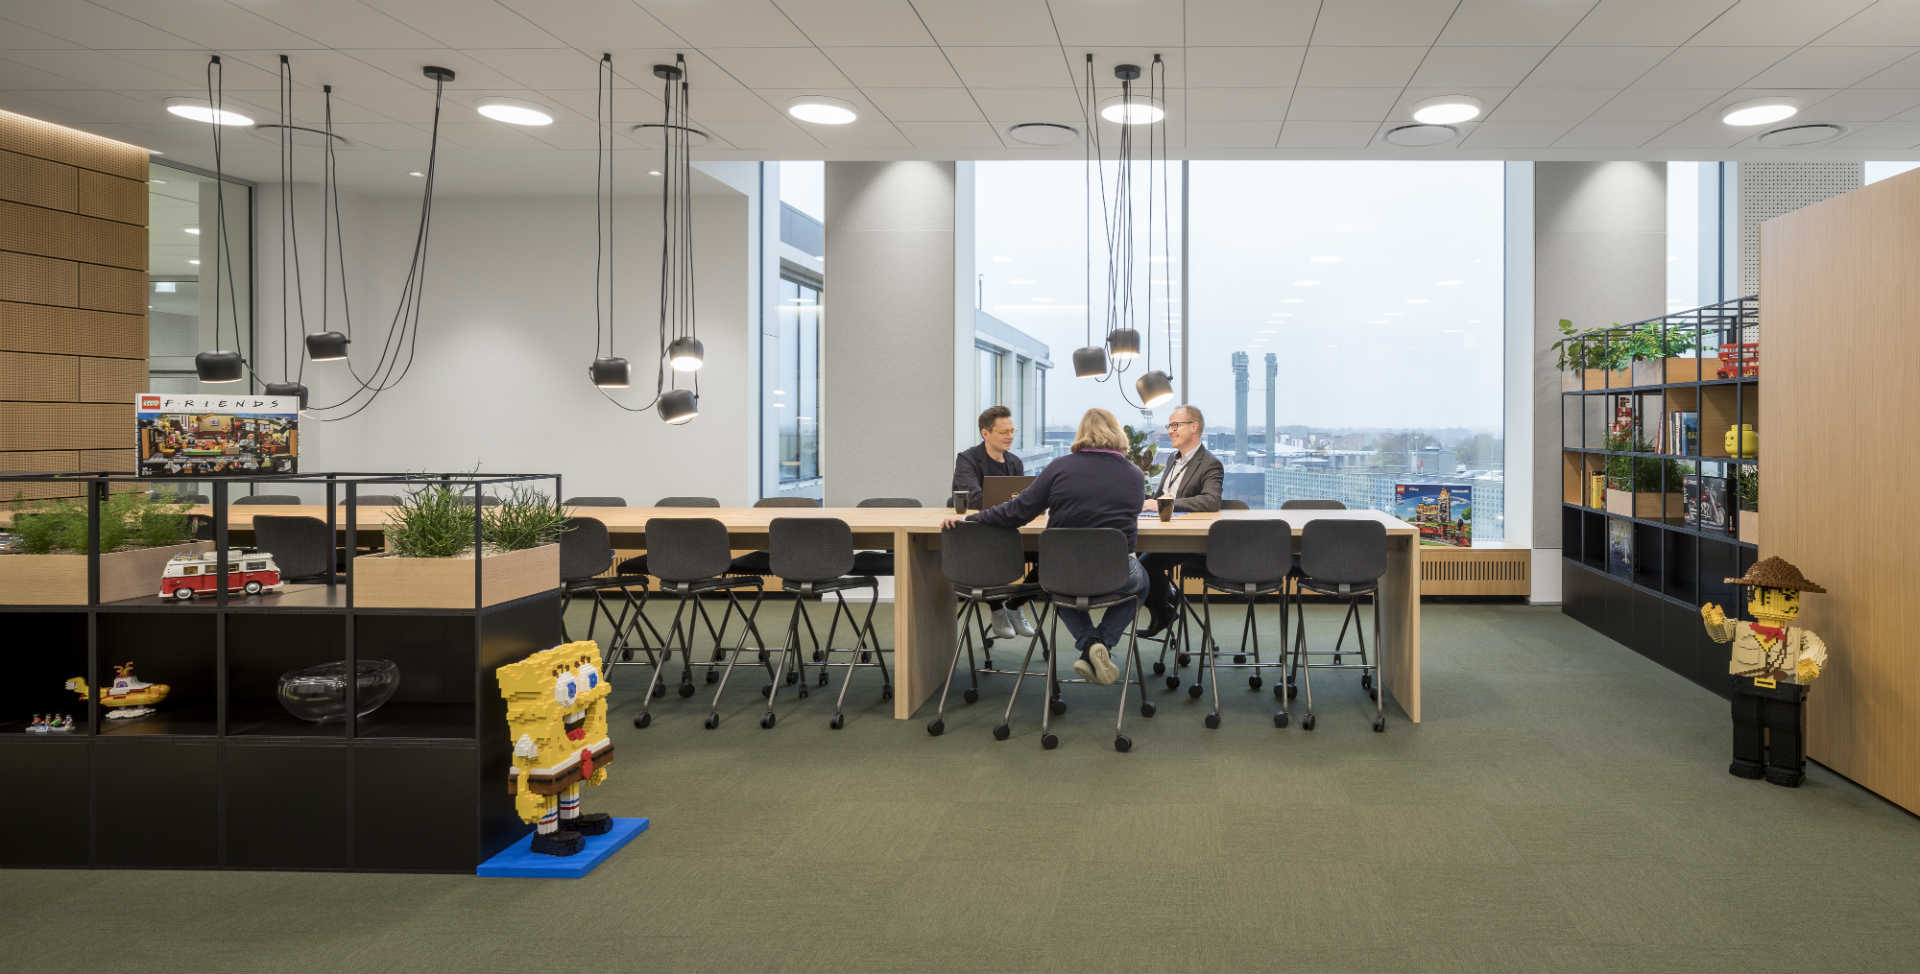 Anneke Beerkens, at the LEGO Group, has worked with hundreds of employees from around the world to design the ultimate LEGO workplace.